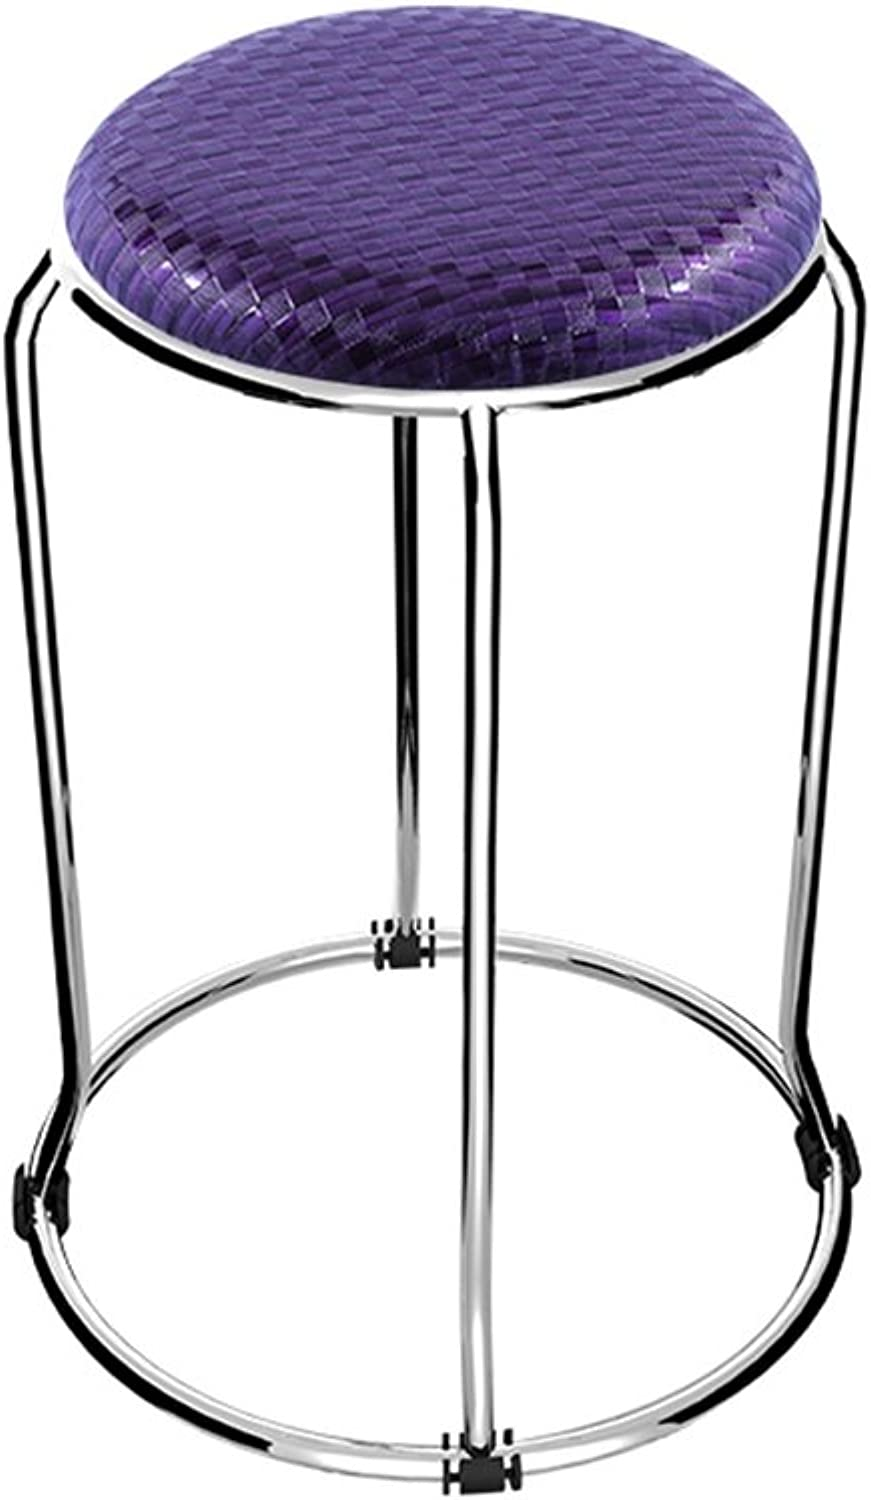 Fashion Stainless Steel Small Round Stool Soft Leather Chair Table High Stool (Purple D37cmH47cm)